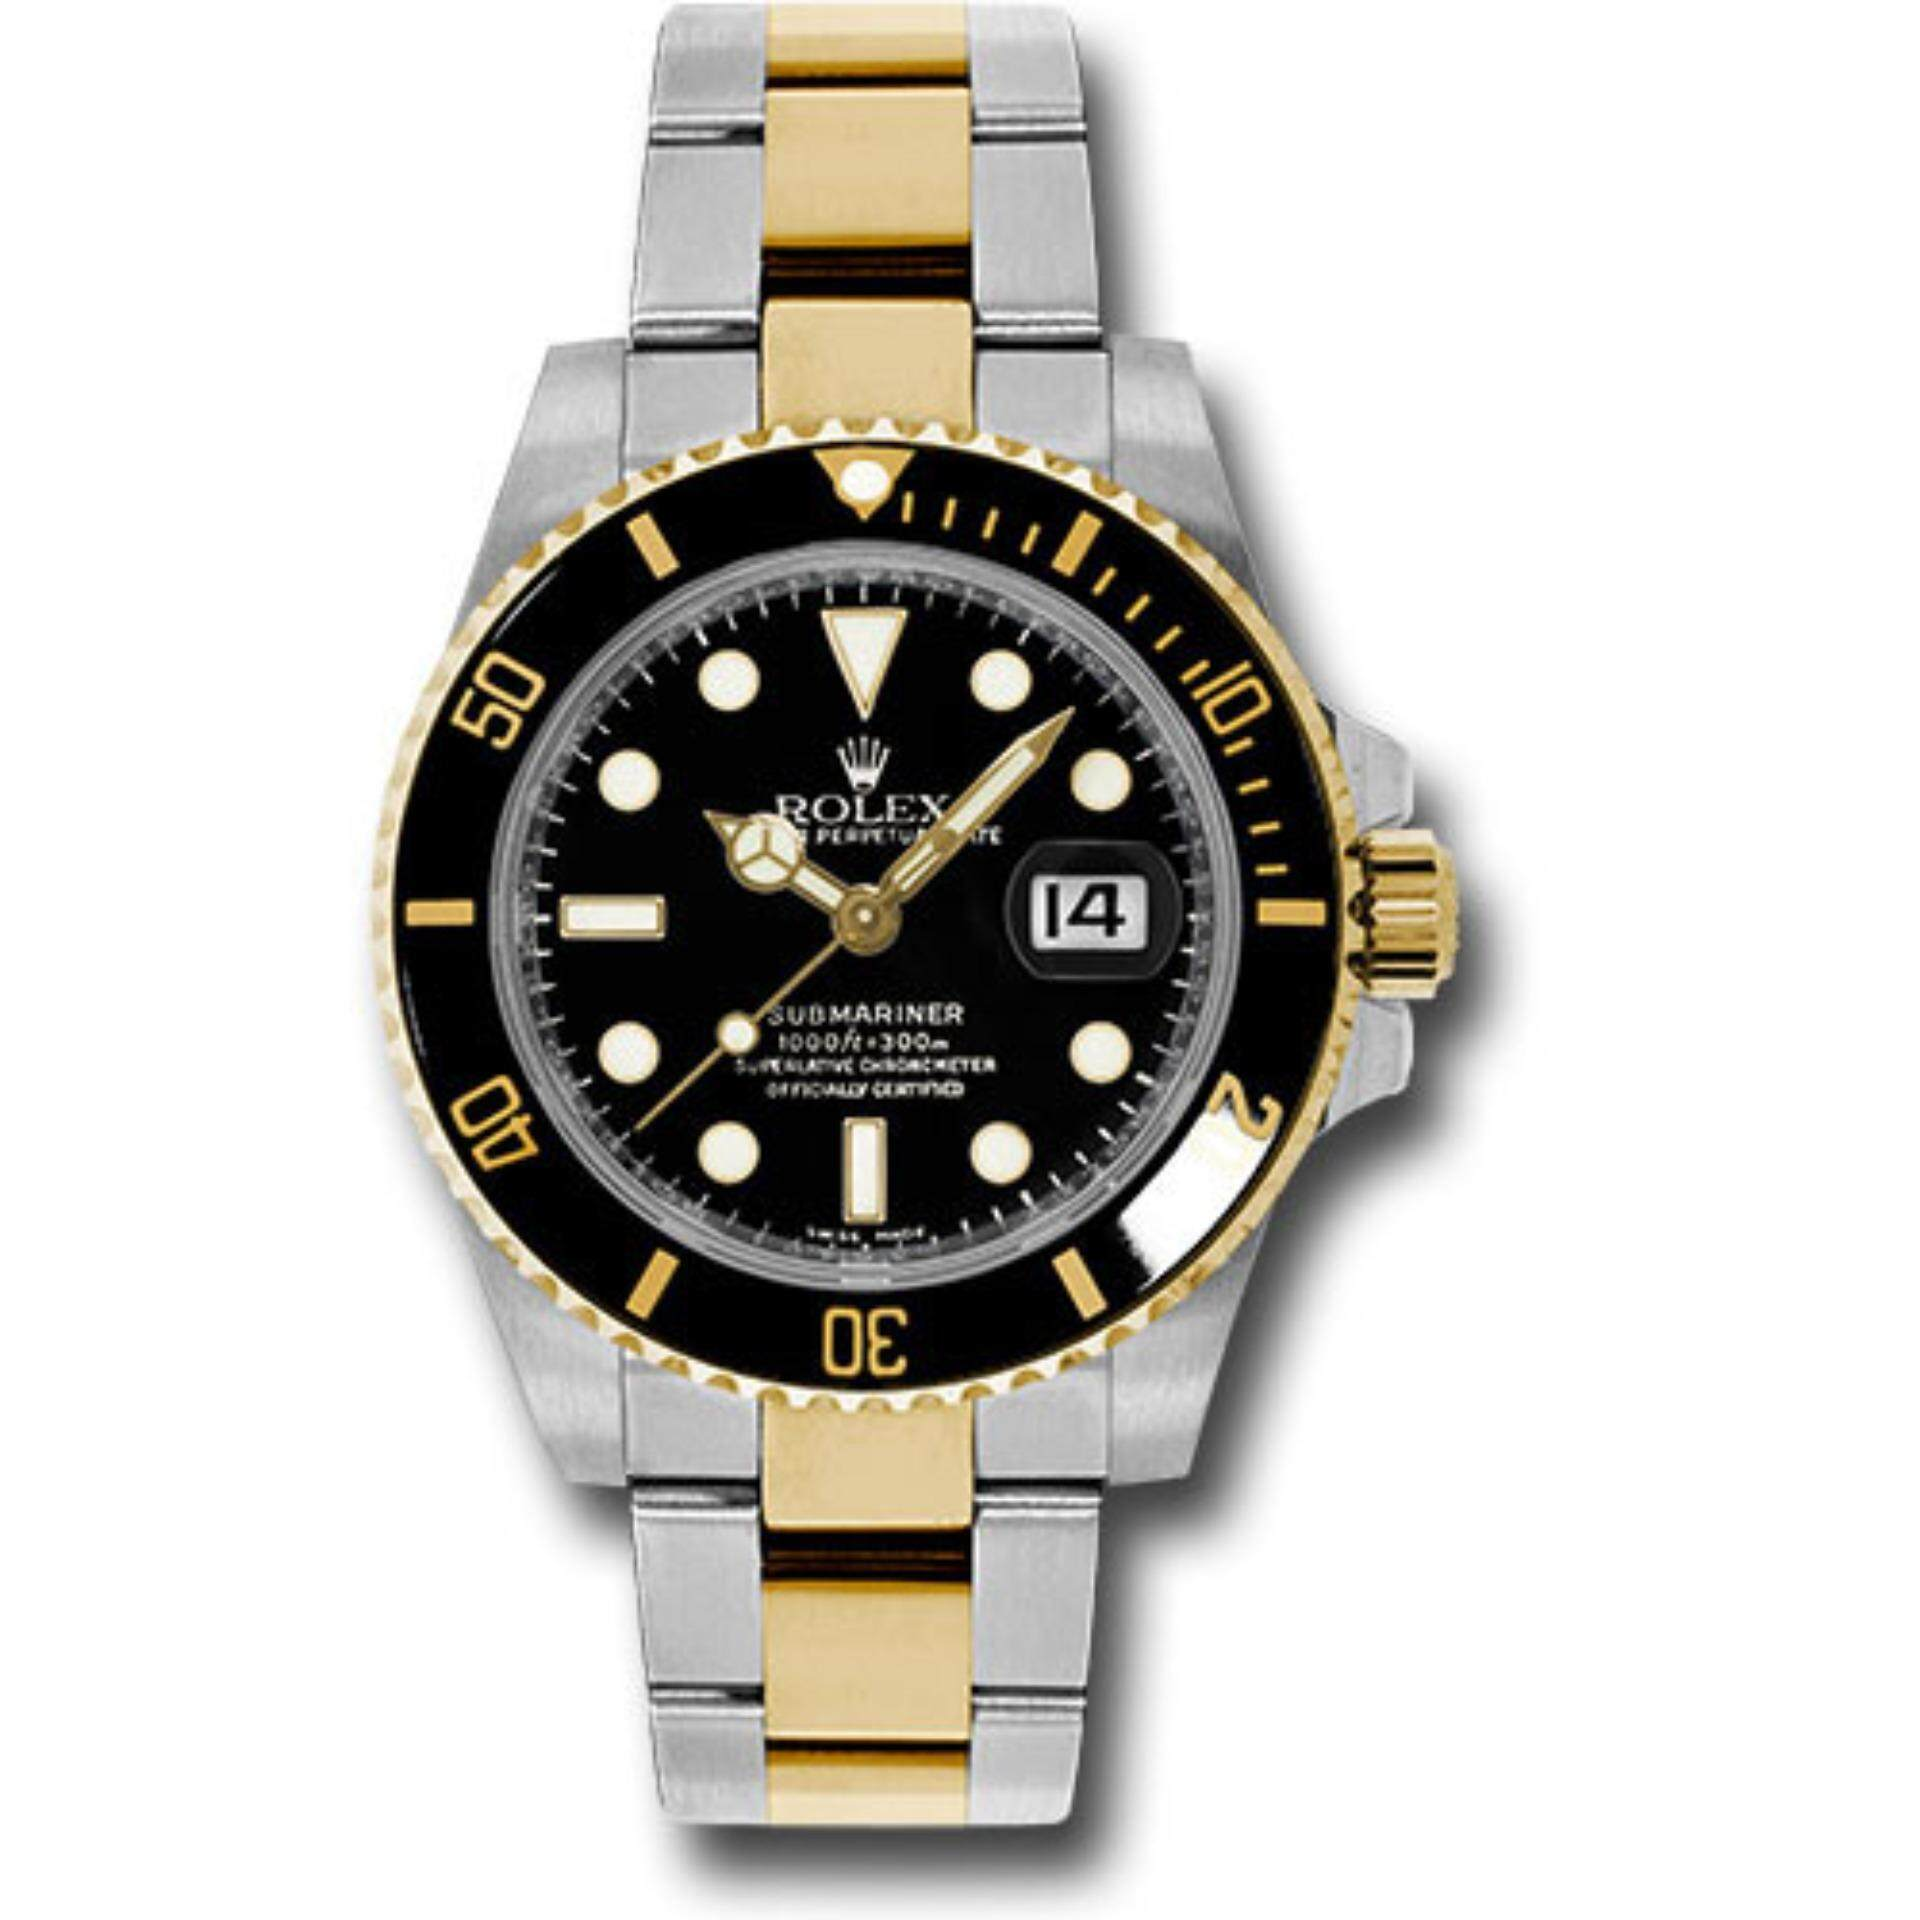 mariner watch steel swisswatchexpo gold diamond serti sub dial mens sapphire f submariner watches rolex